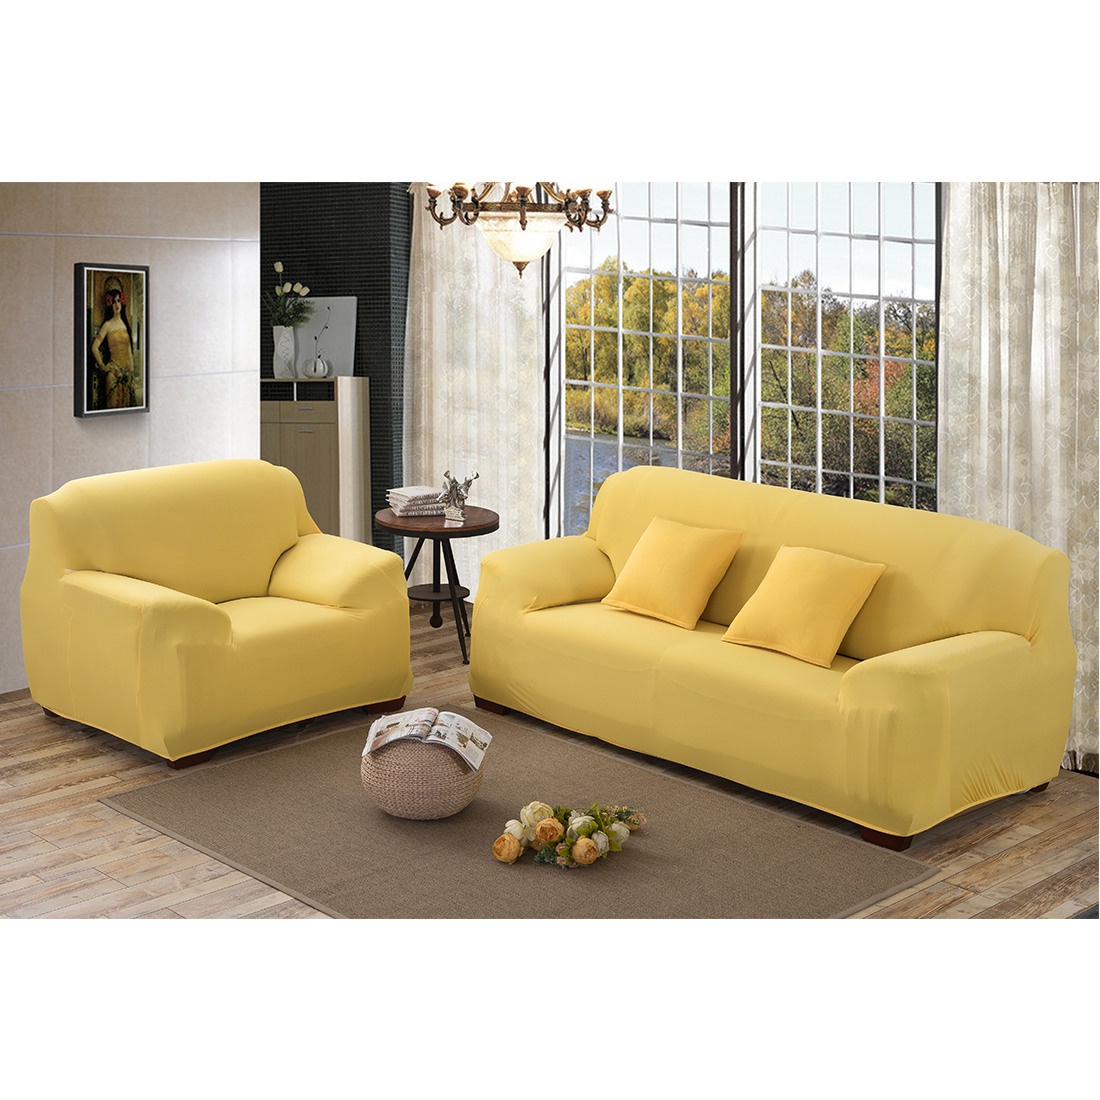 2 3 4 Seater Elastic Sofa Cover Anti Dust Sectional